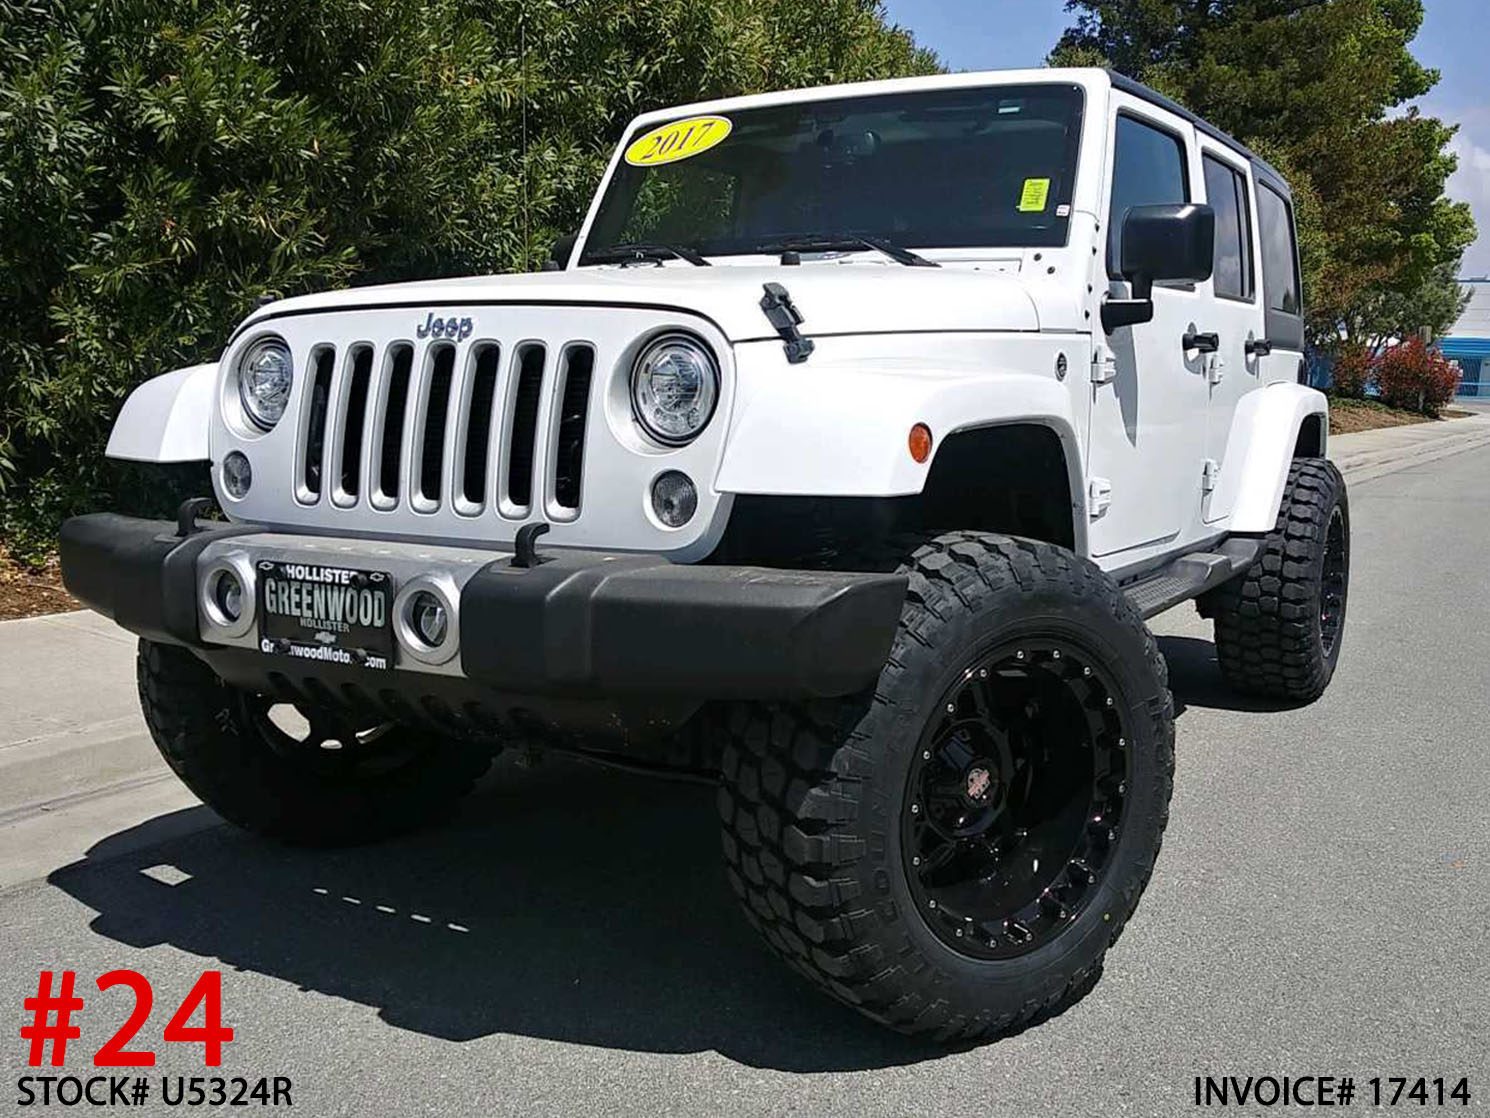 USED 2017 JEEP WRANGLER 4DR #U5324R